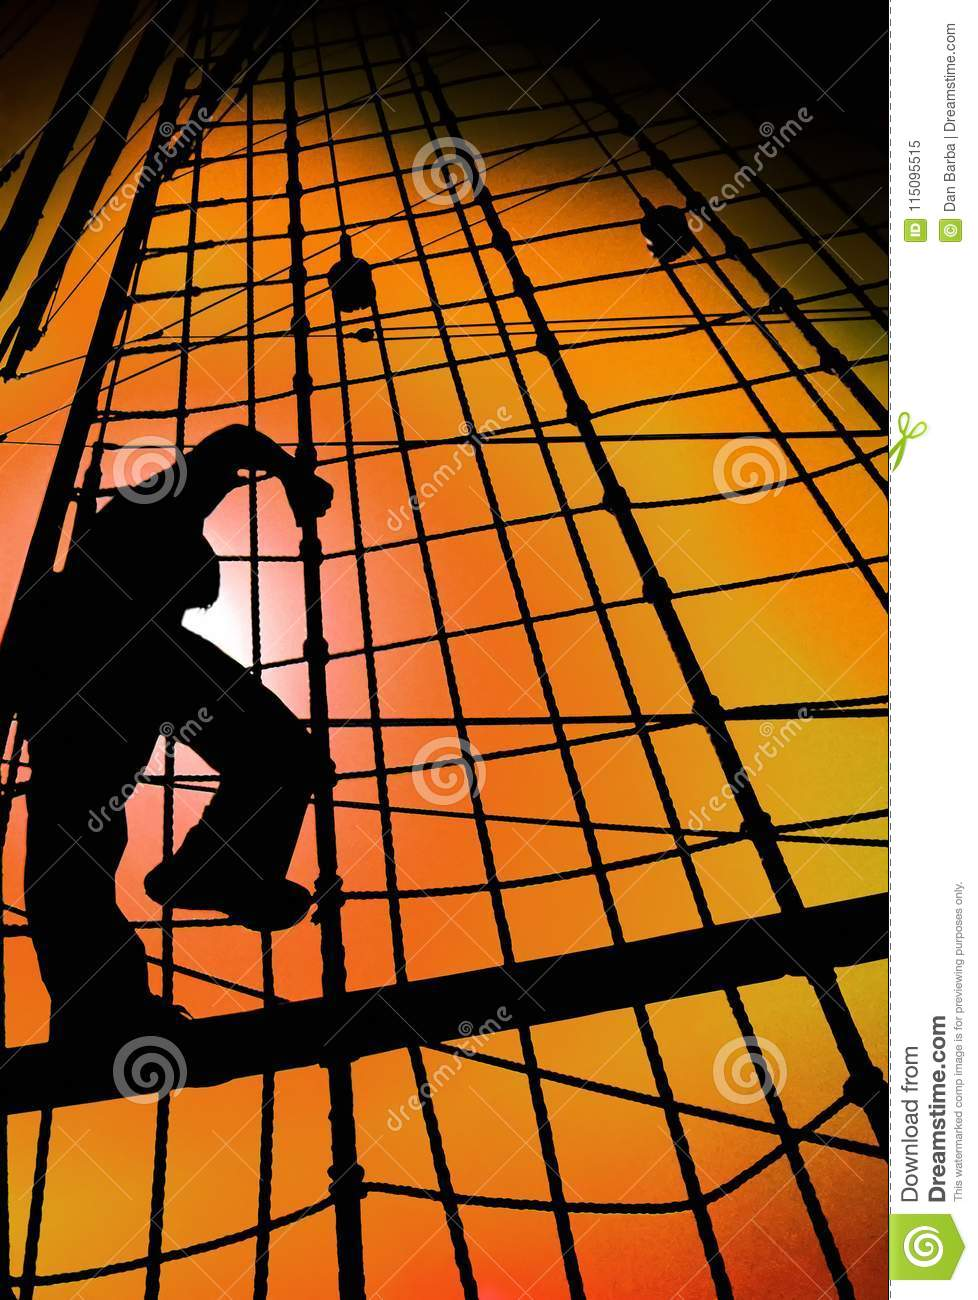 SAILOR MAN SILHOUETTE CLIMBING SHIP ROPES AGAINST GOLD SUNSET SKY